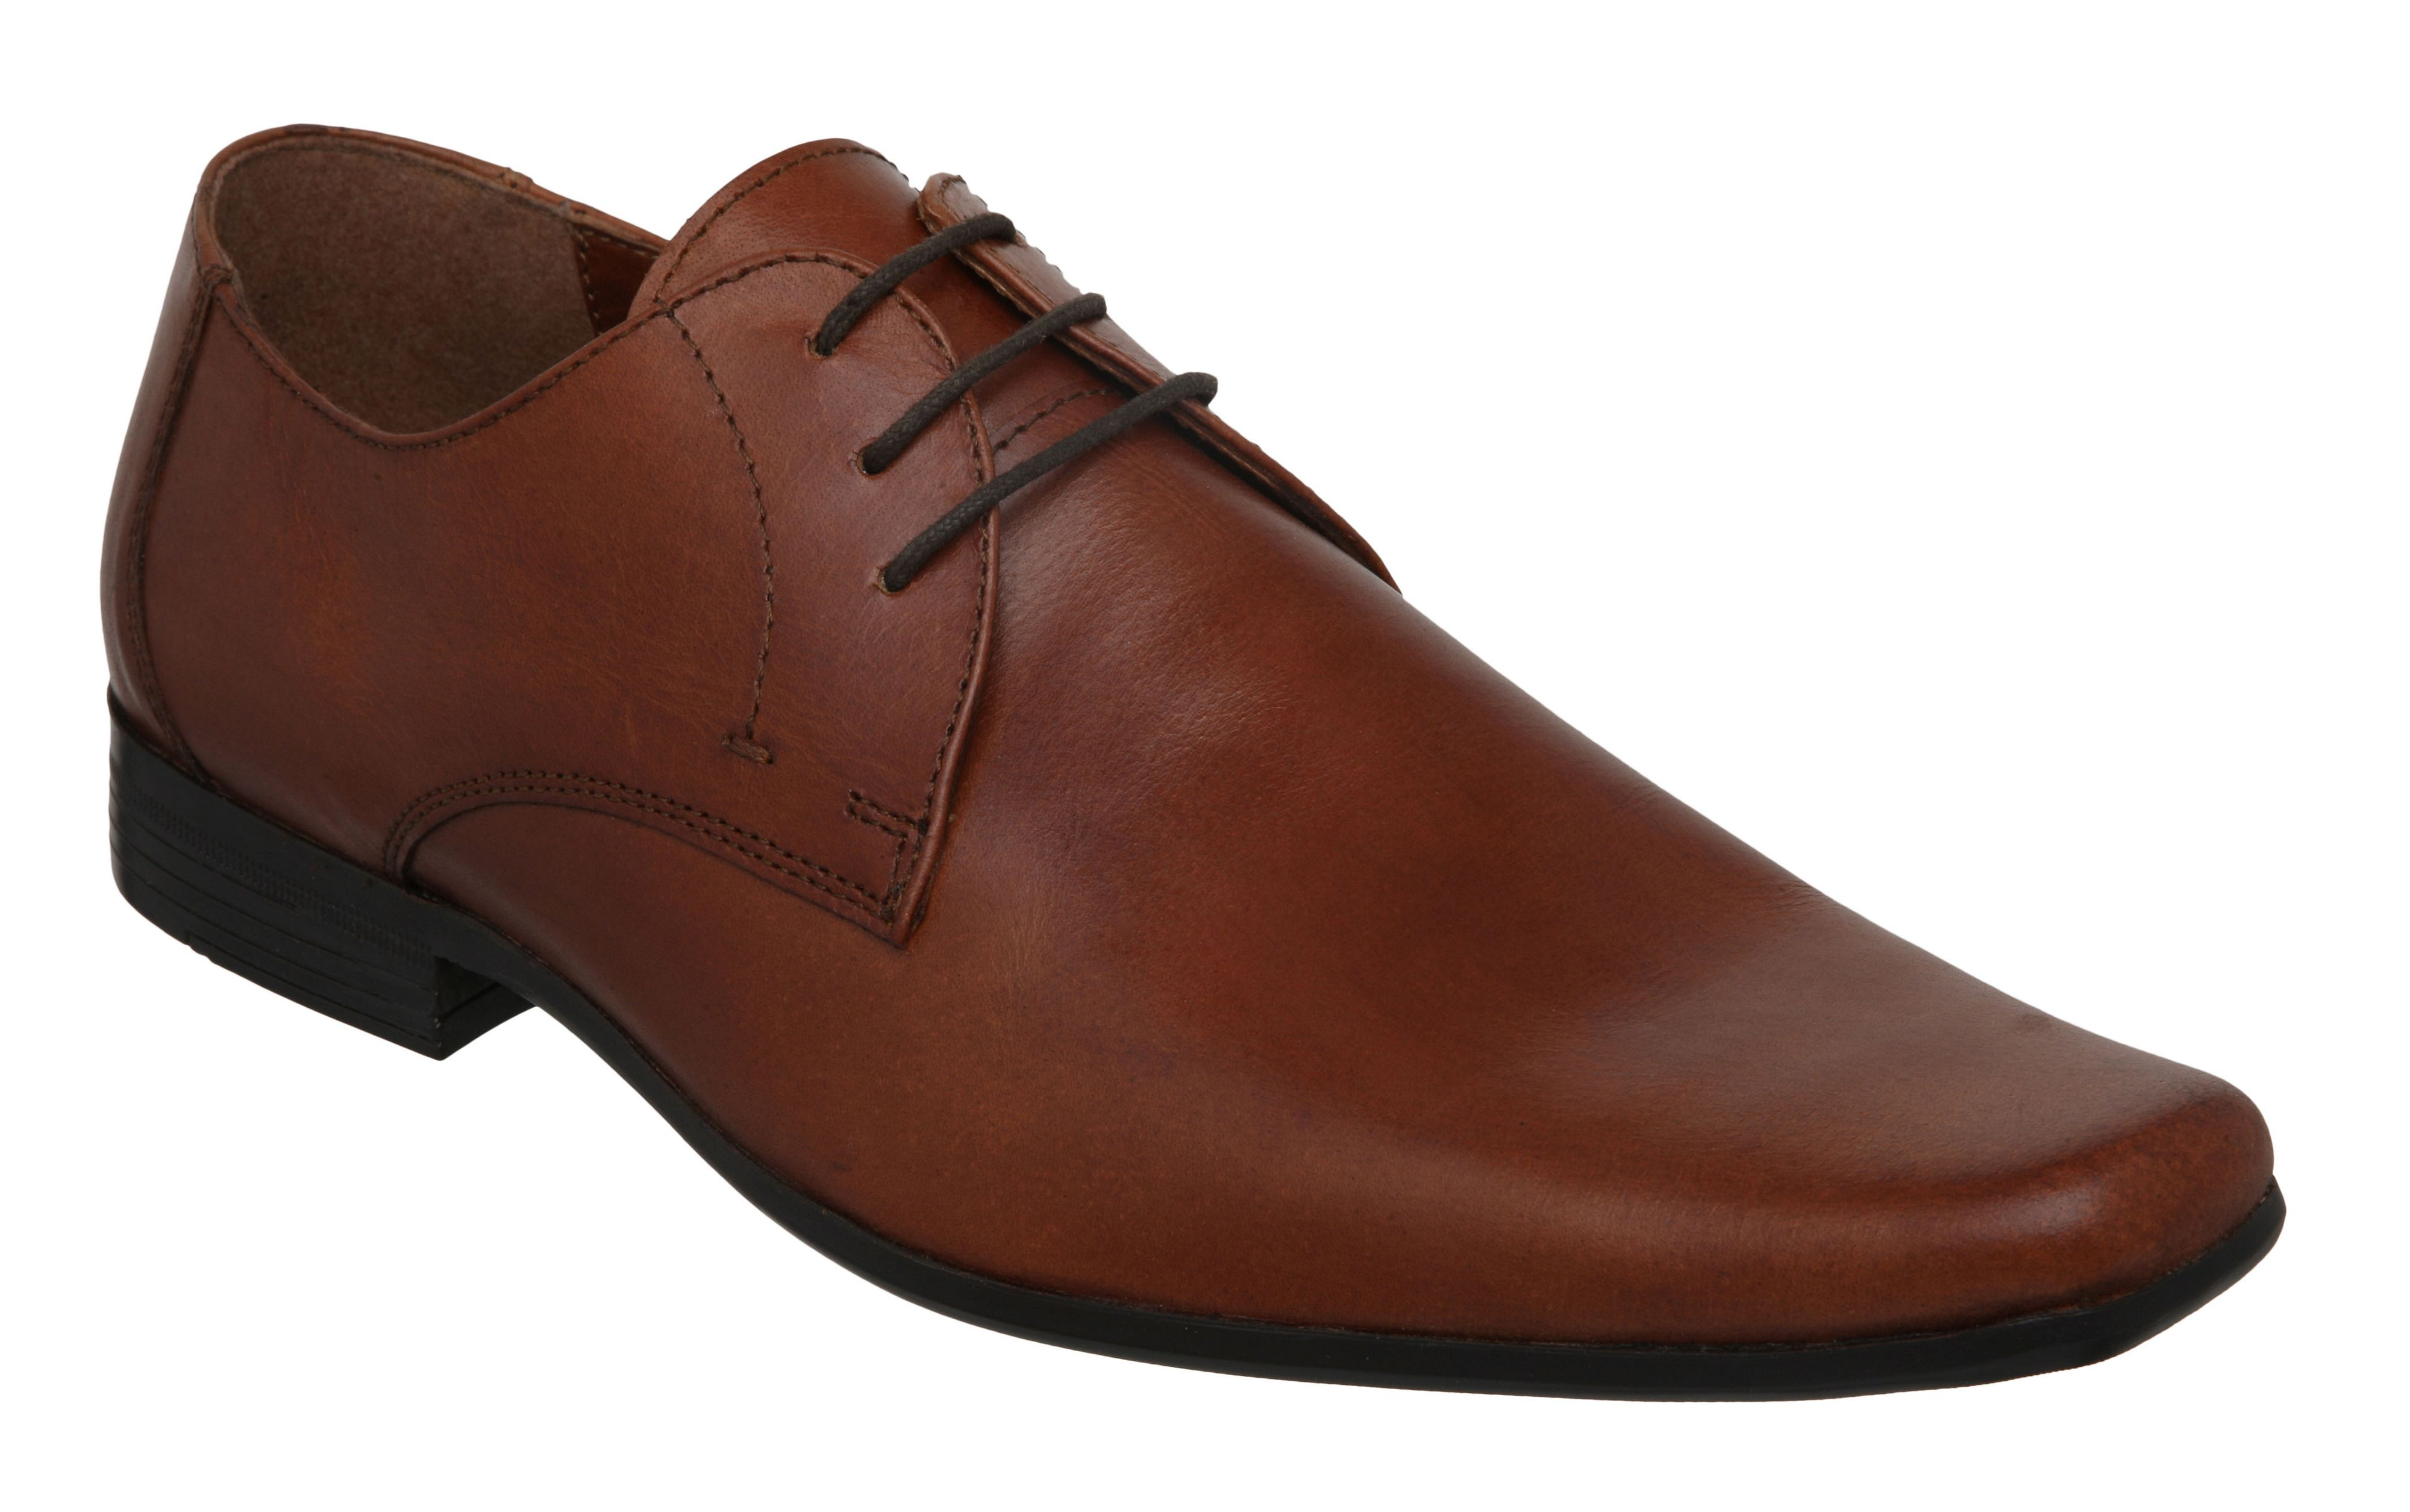 Alkaline formal shoes